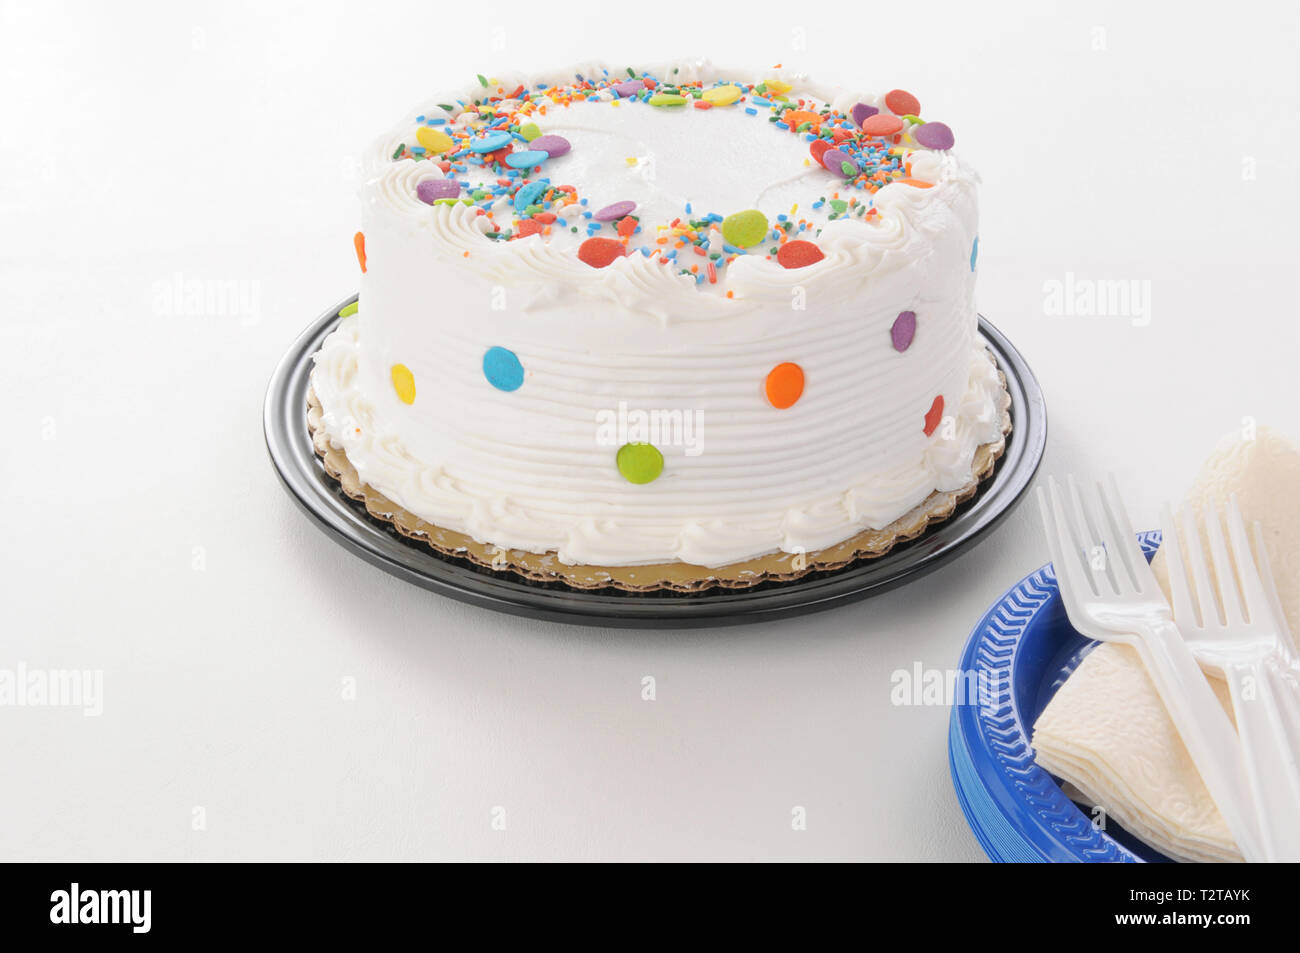 A white cake with candy sprinkles and plastic plates - Stock Image